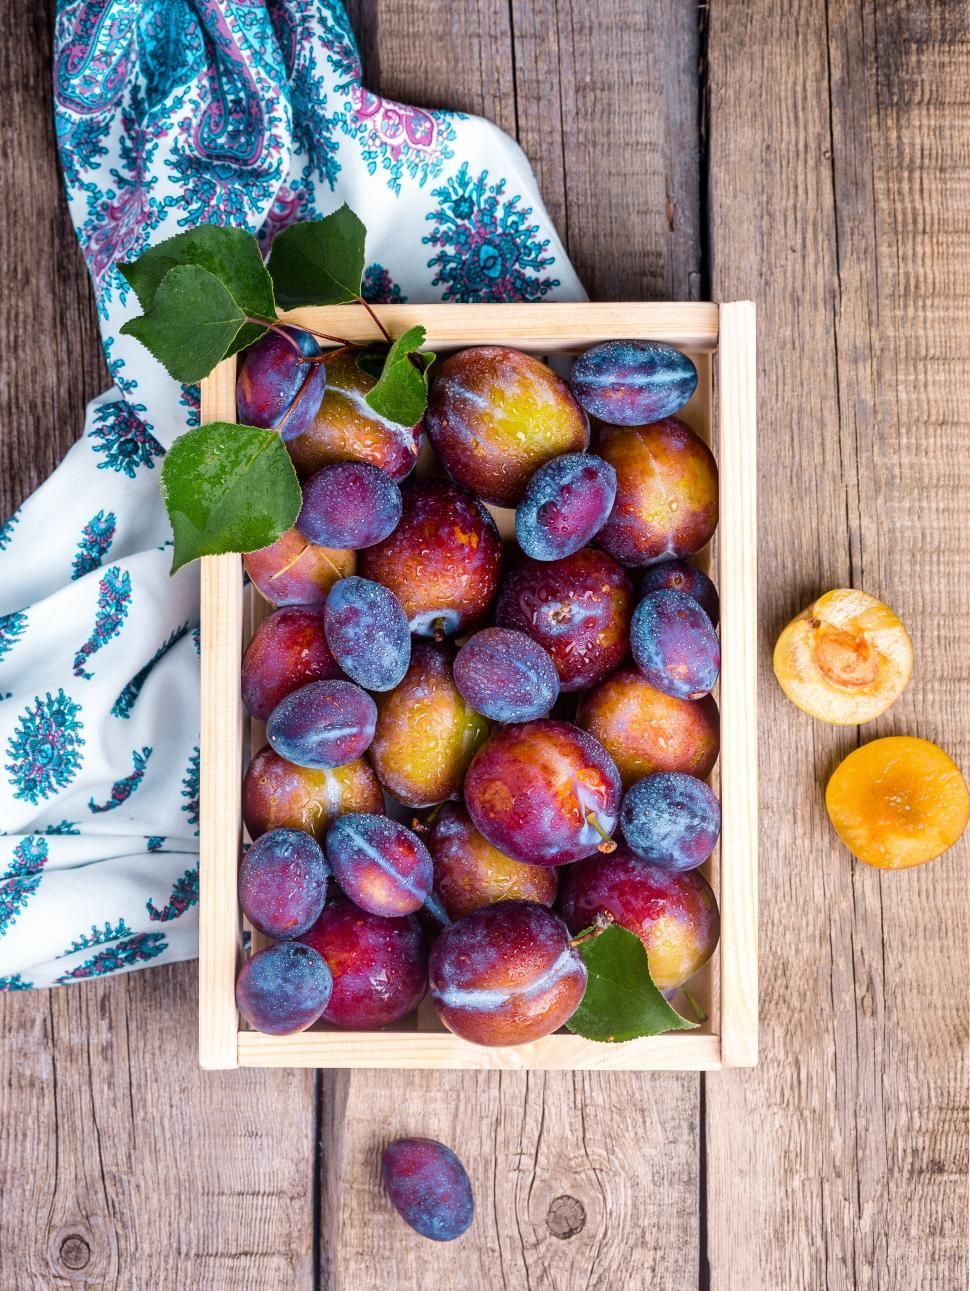 Download Free Stock HD Photo of Overhead view of a crate full of ripe plums Online